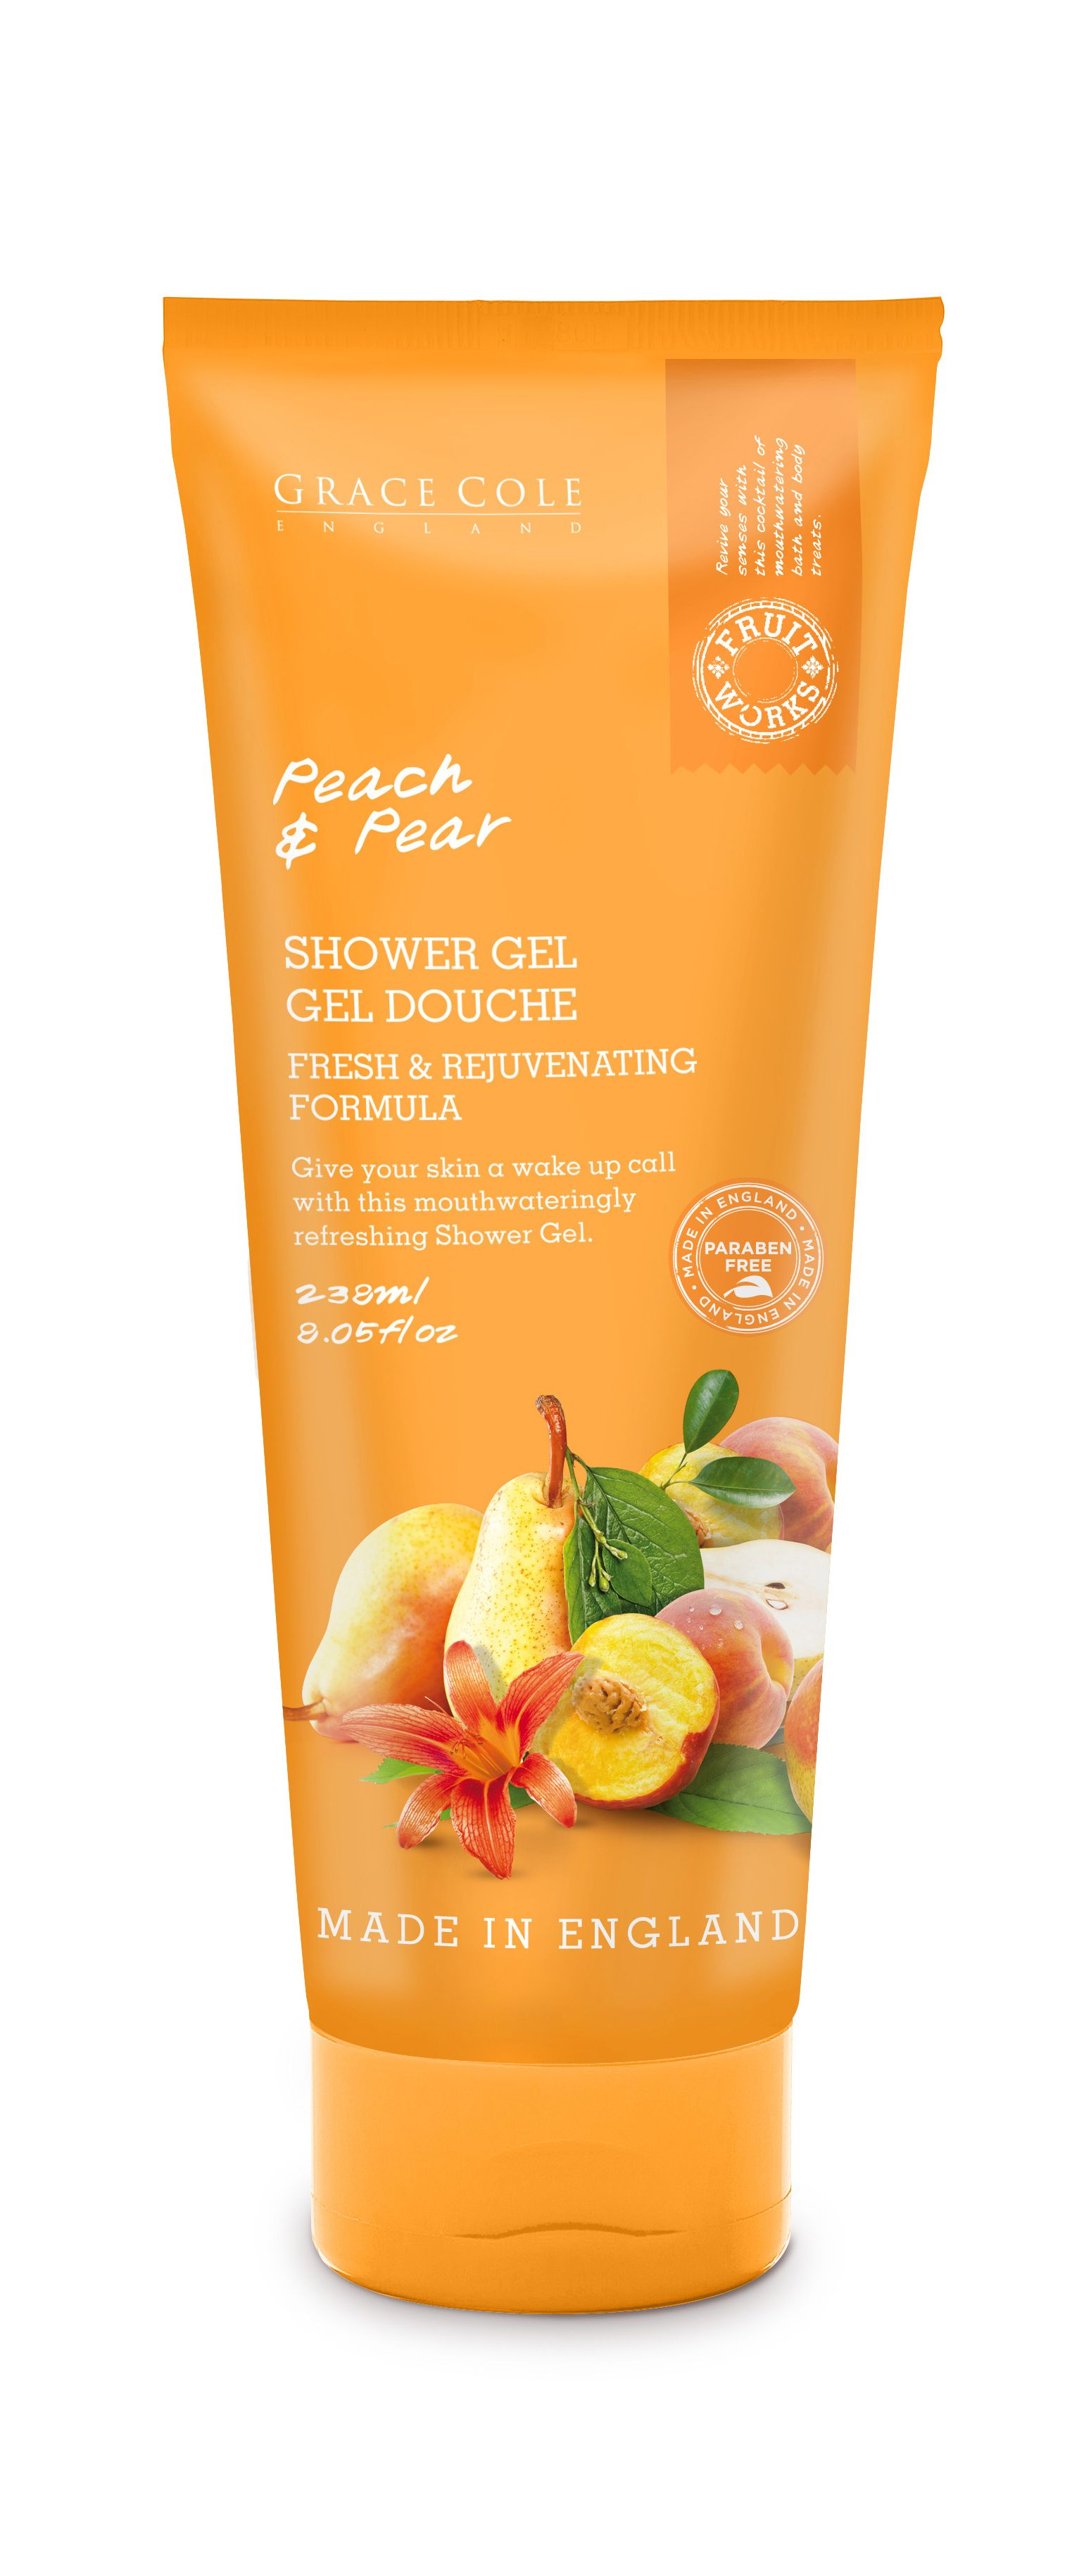 Peach & Pear Shower Gel 238ml